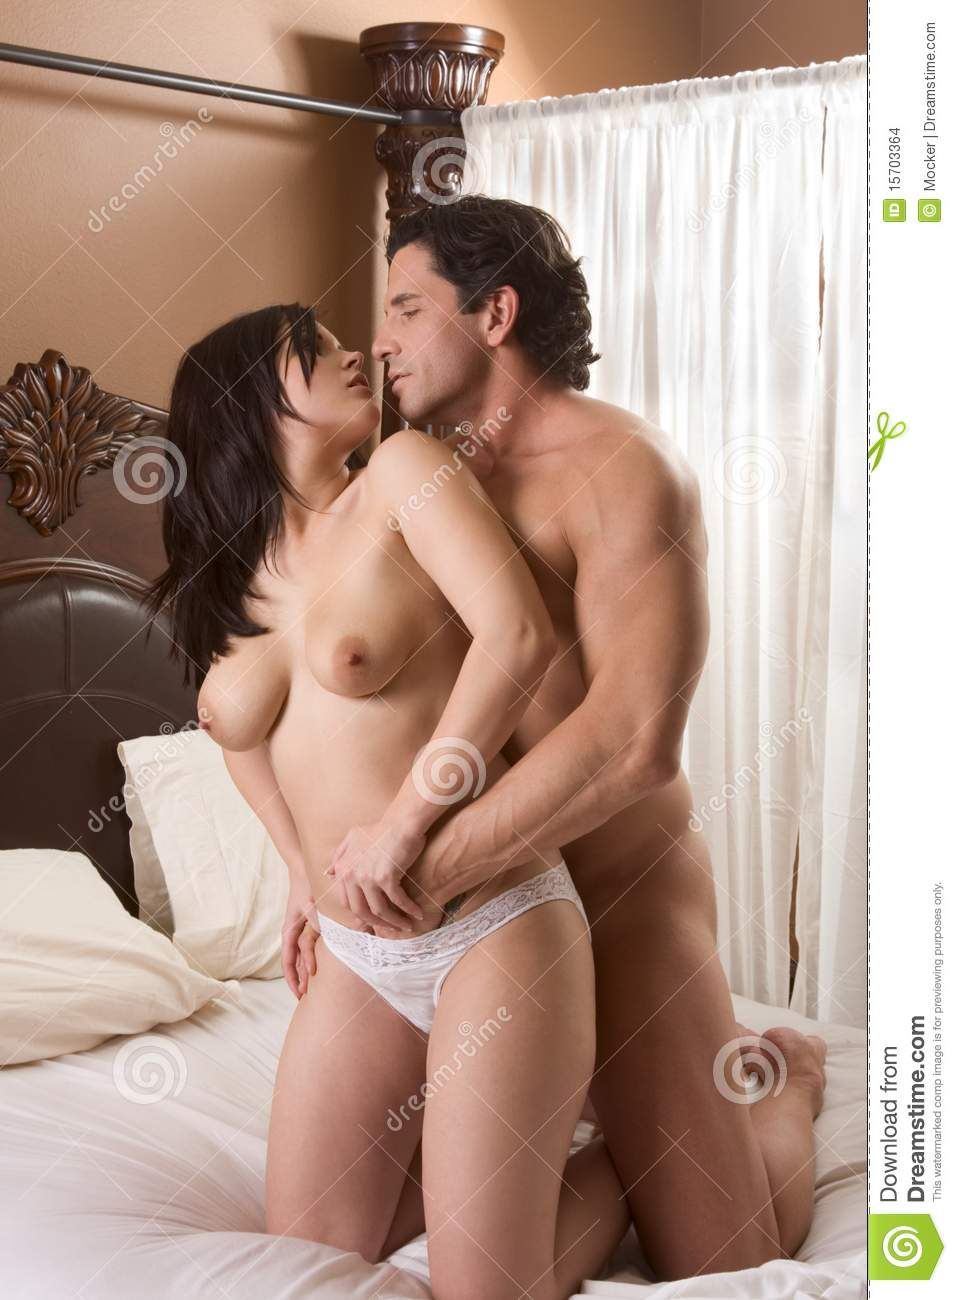 For the nude couples having sex in bedroom